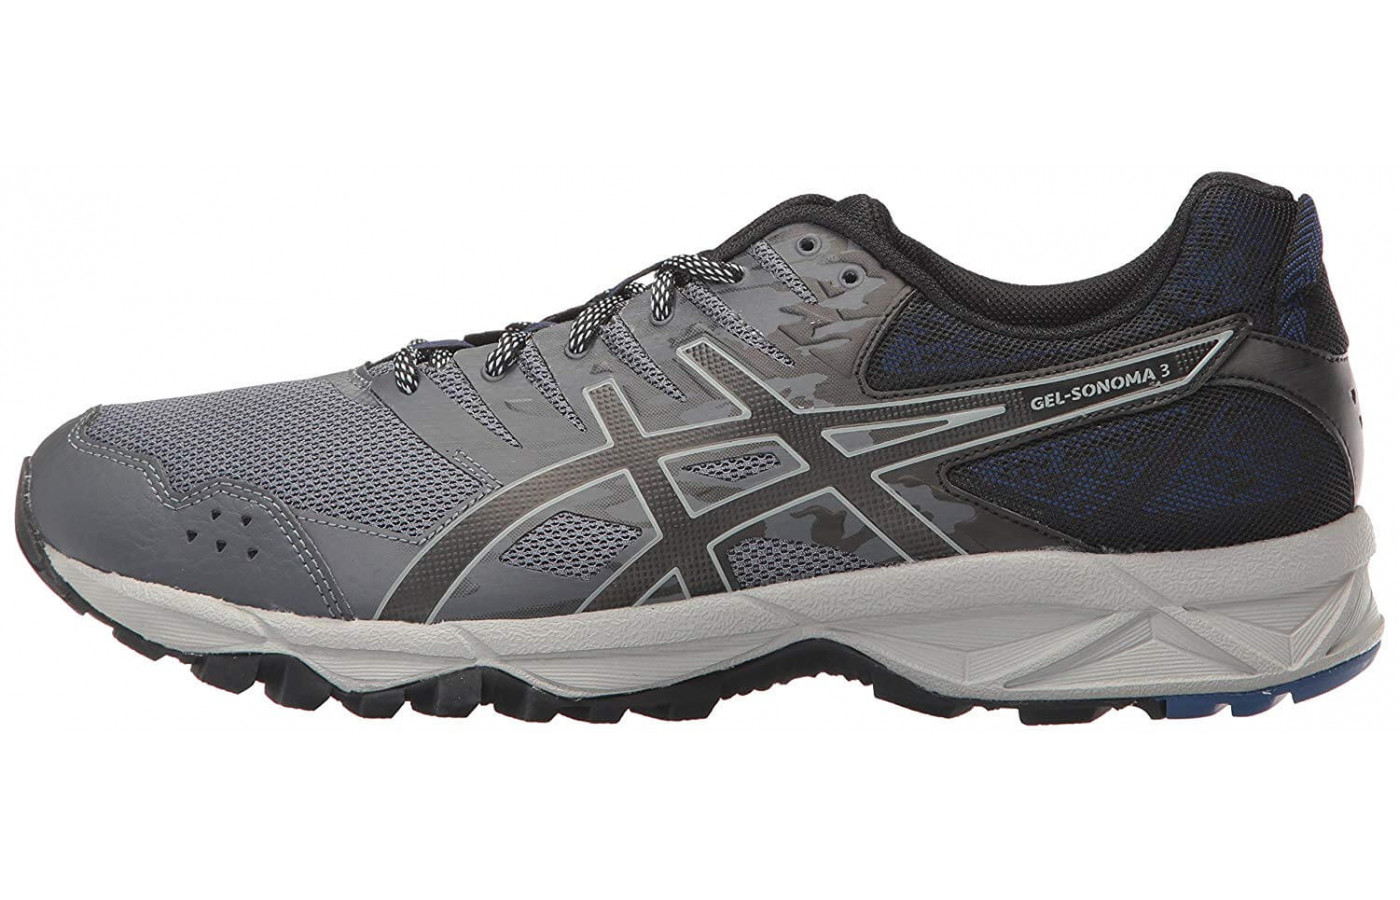 The ASICS GEL-Sonoma 3 side view